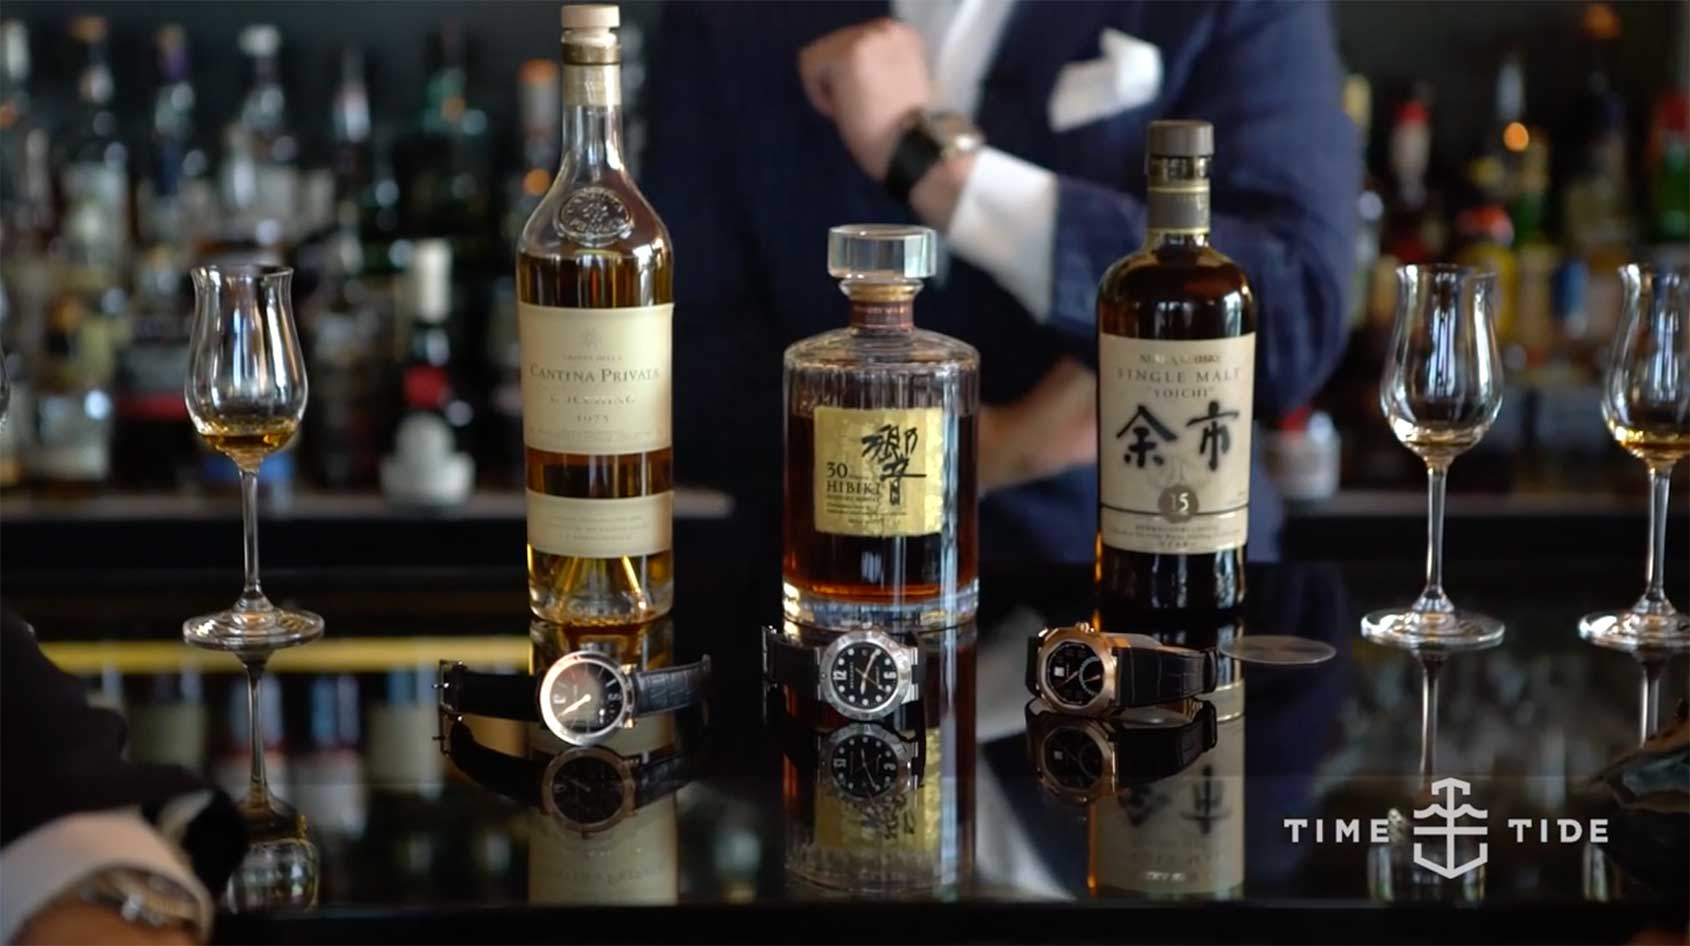 watch on strap closer bauhaus watches ryok new s my favorite junghansmaxbill whiskey pin at whisky look